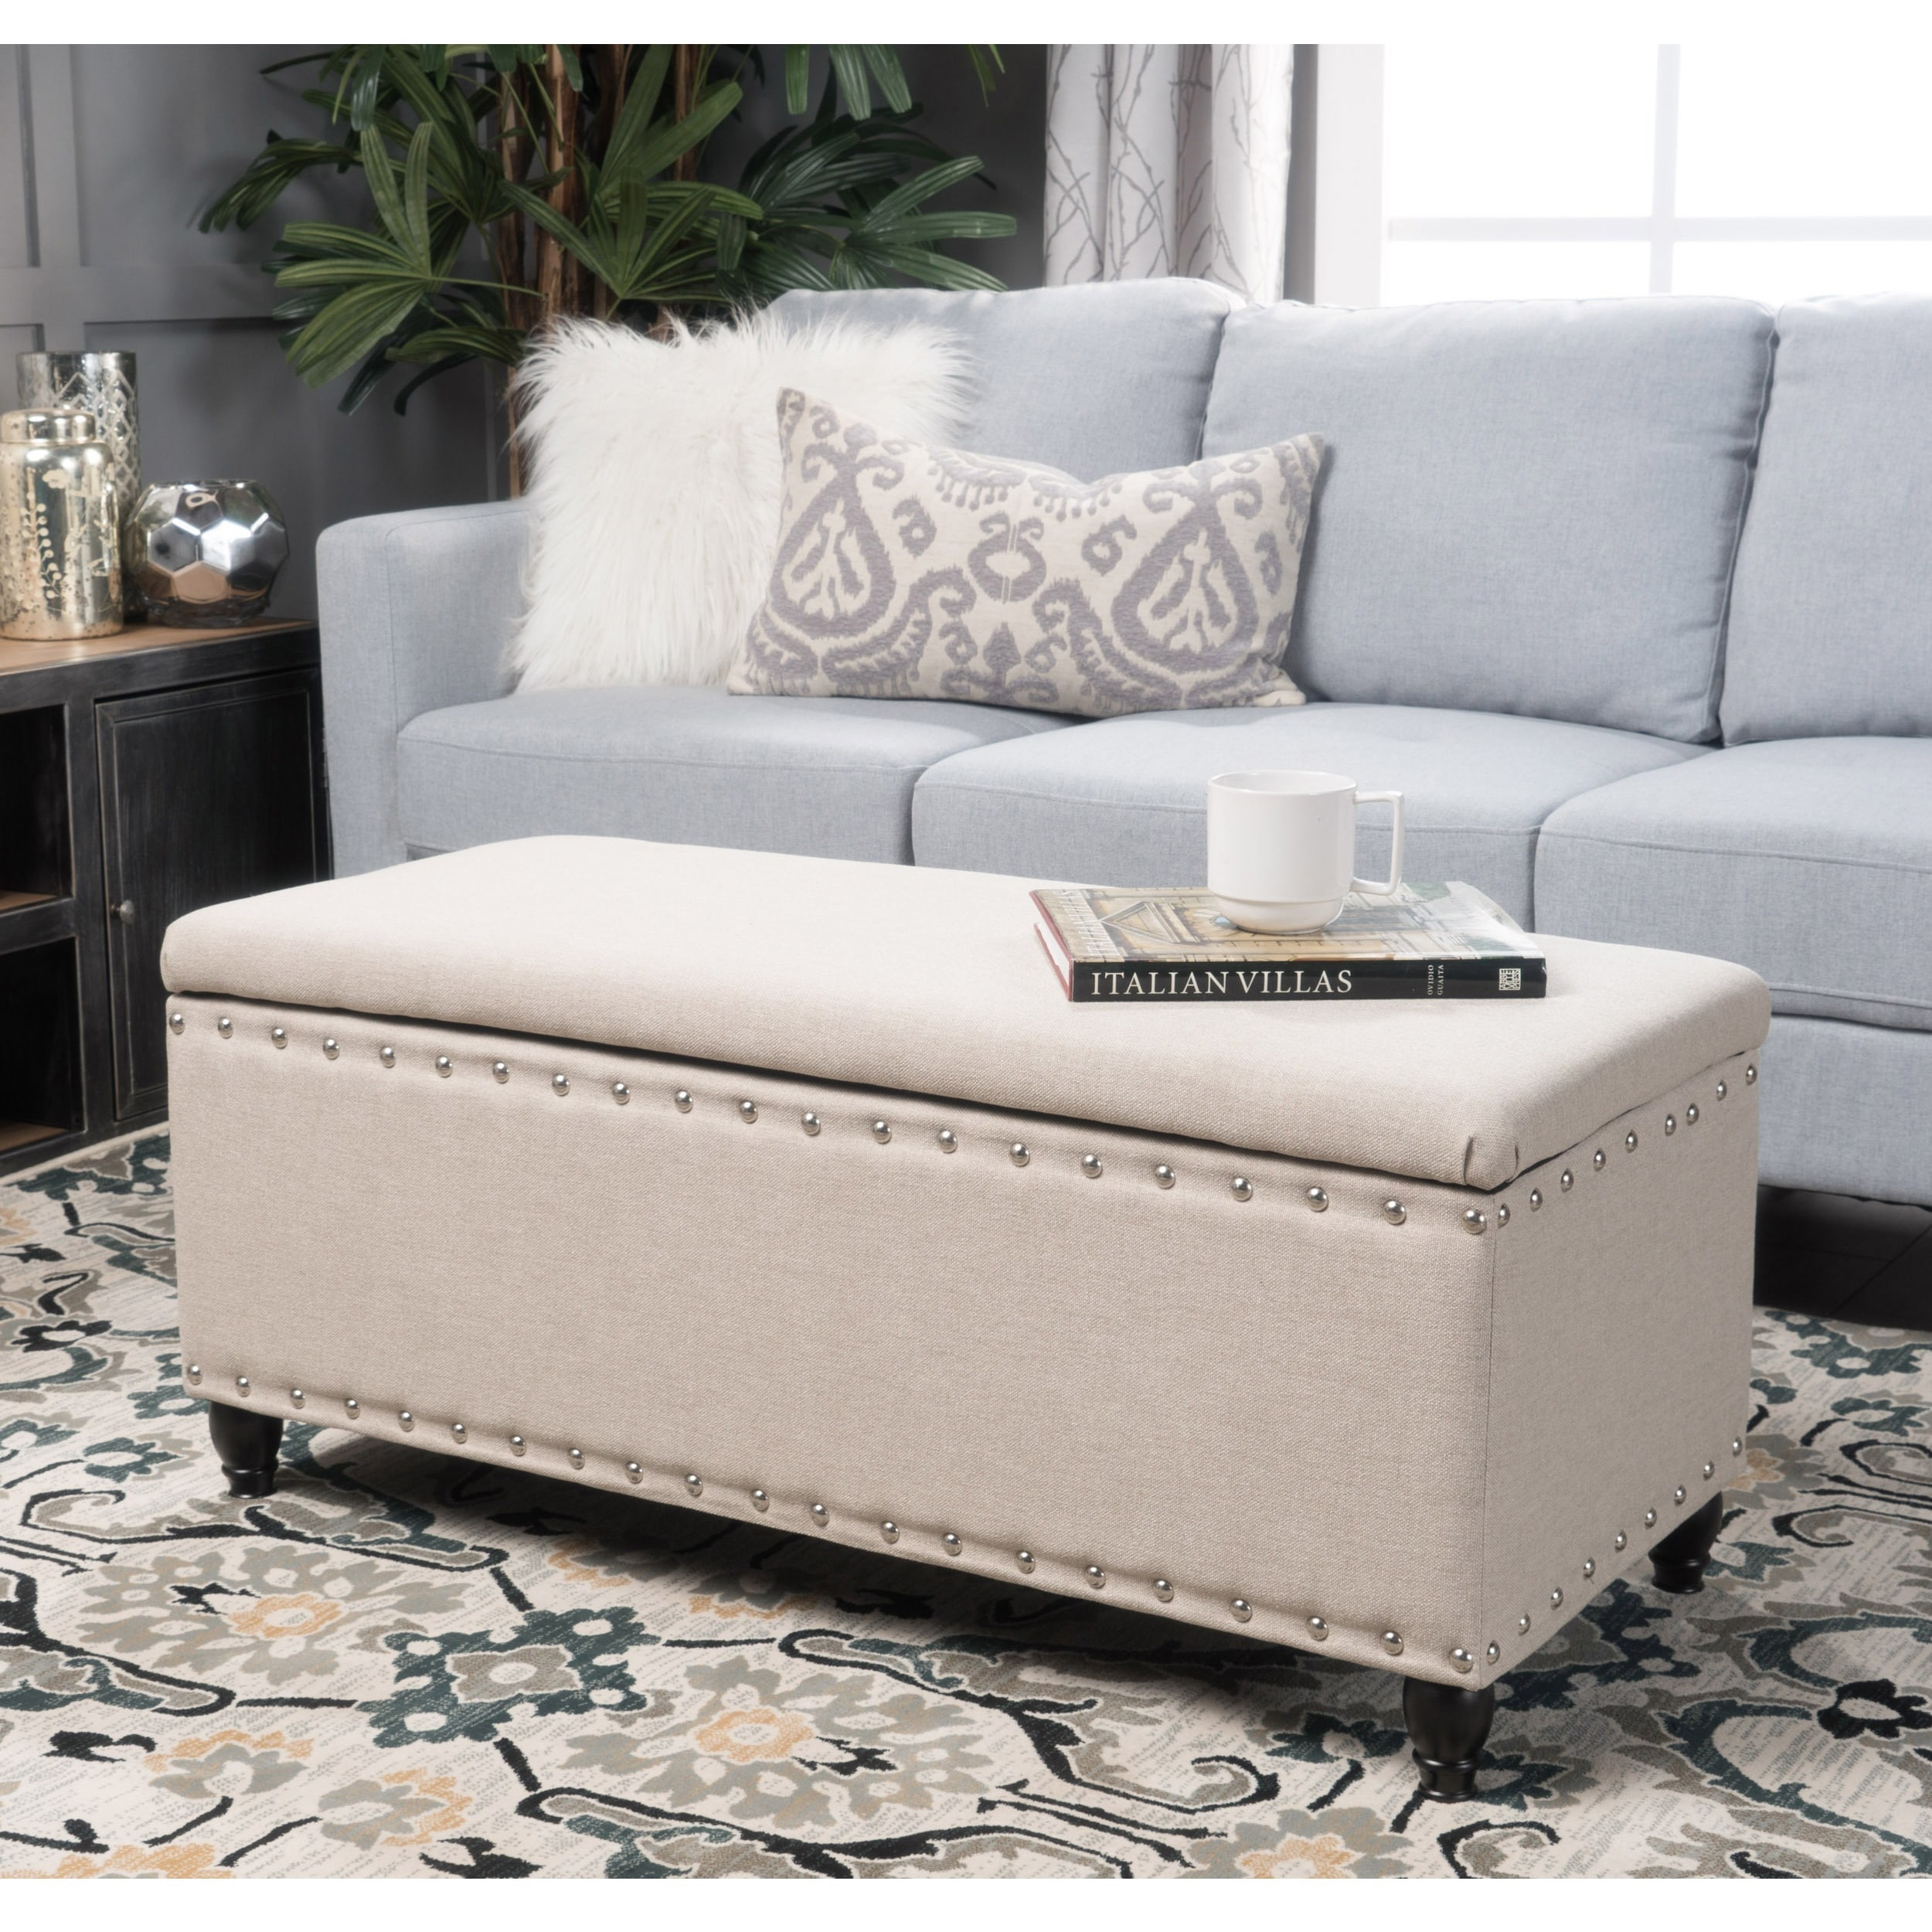 Great Tatiana Studded Fabric Storage Ottoman Bench By Christopher Knight Home    Free Shipping Today   Overstock.com   20744638